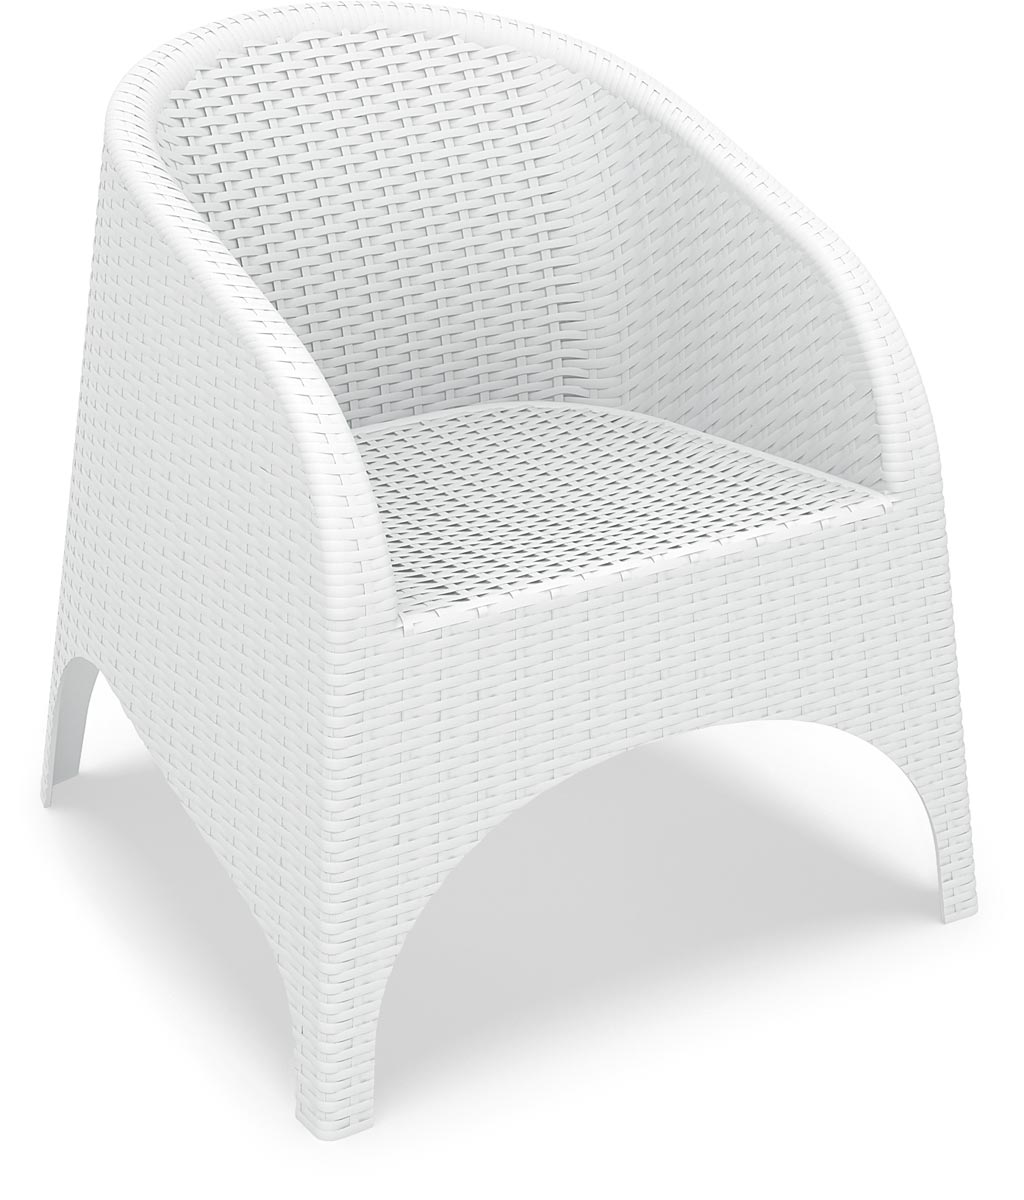 White Chair - Shown without Cushion